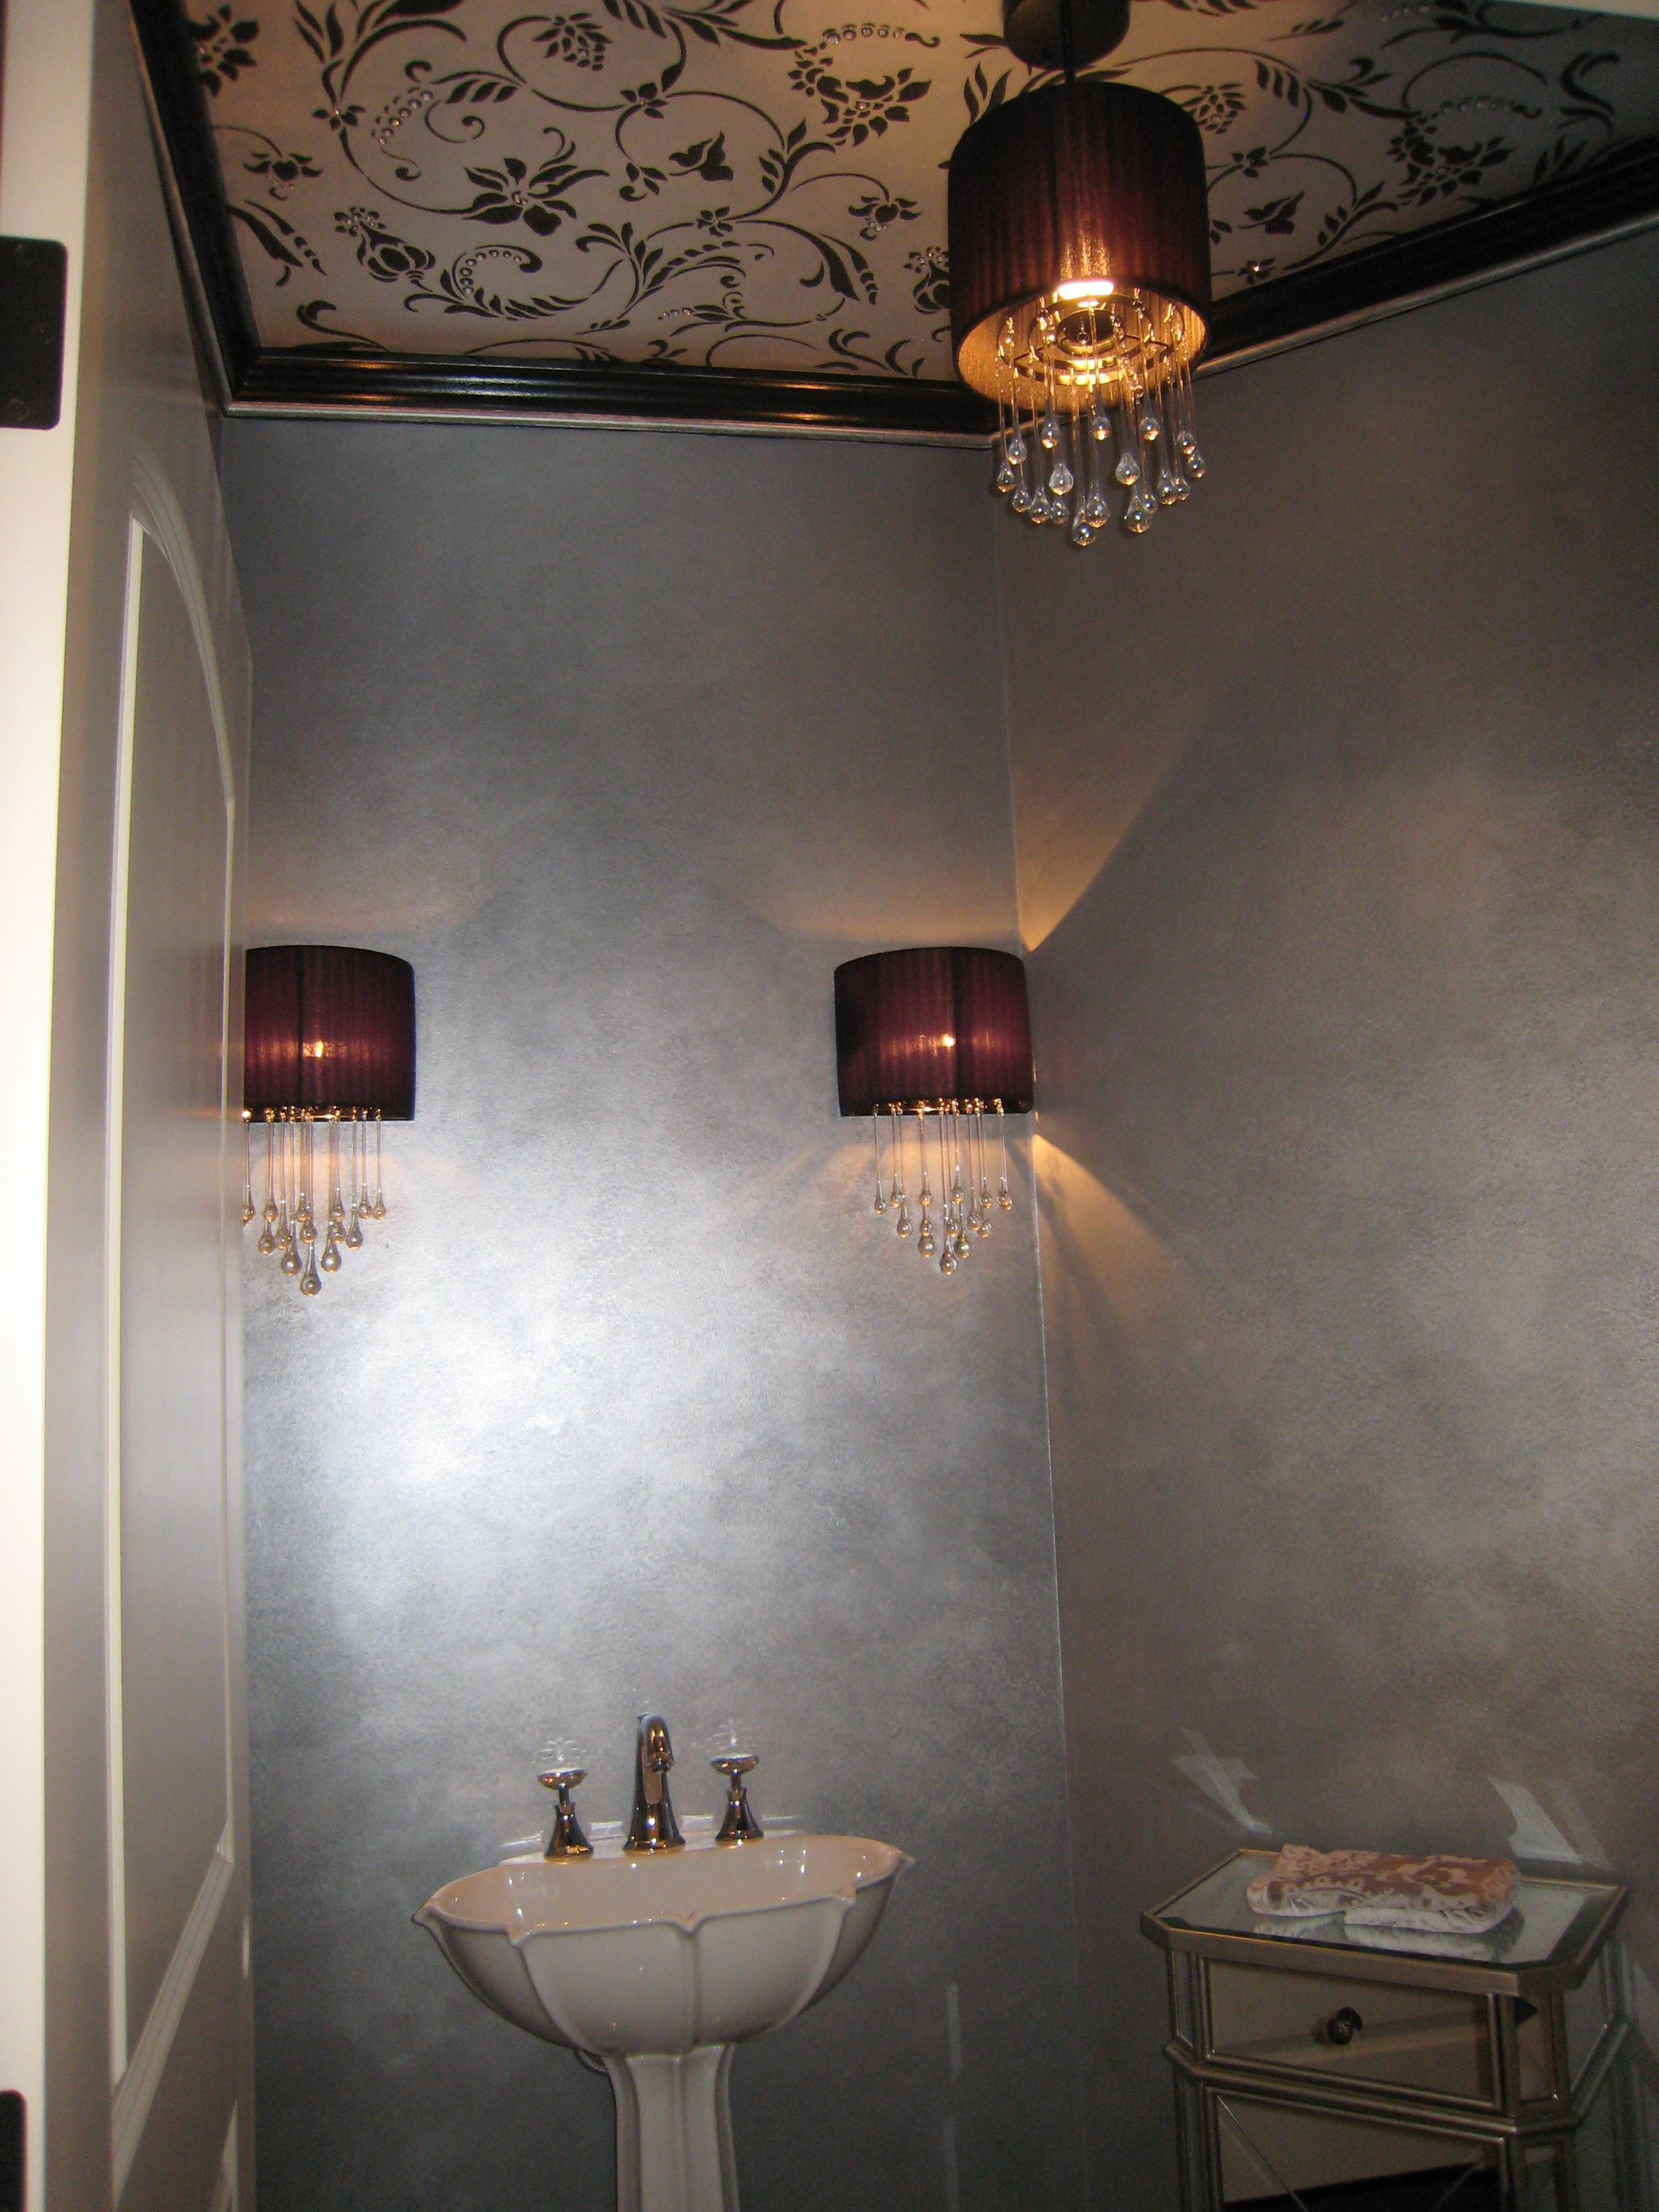 Powder room with metallic paint on ceiling stencil and for Bathroom ceiling paint ideas